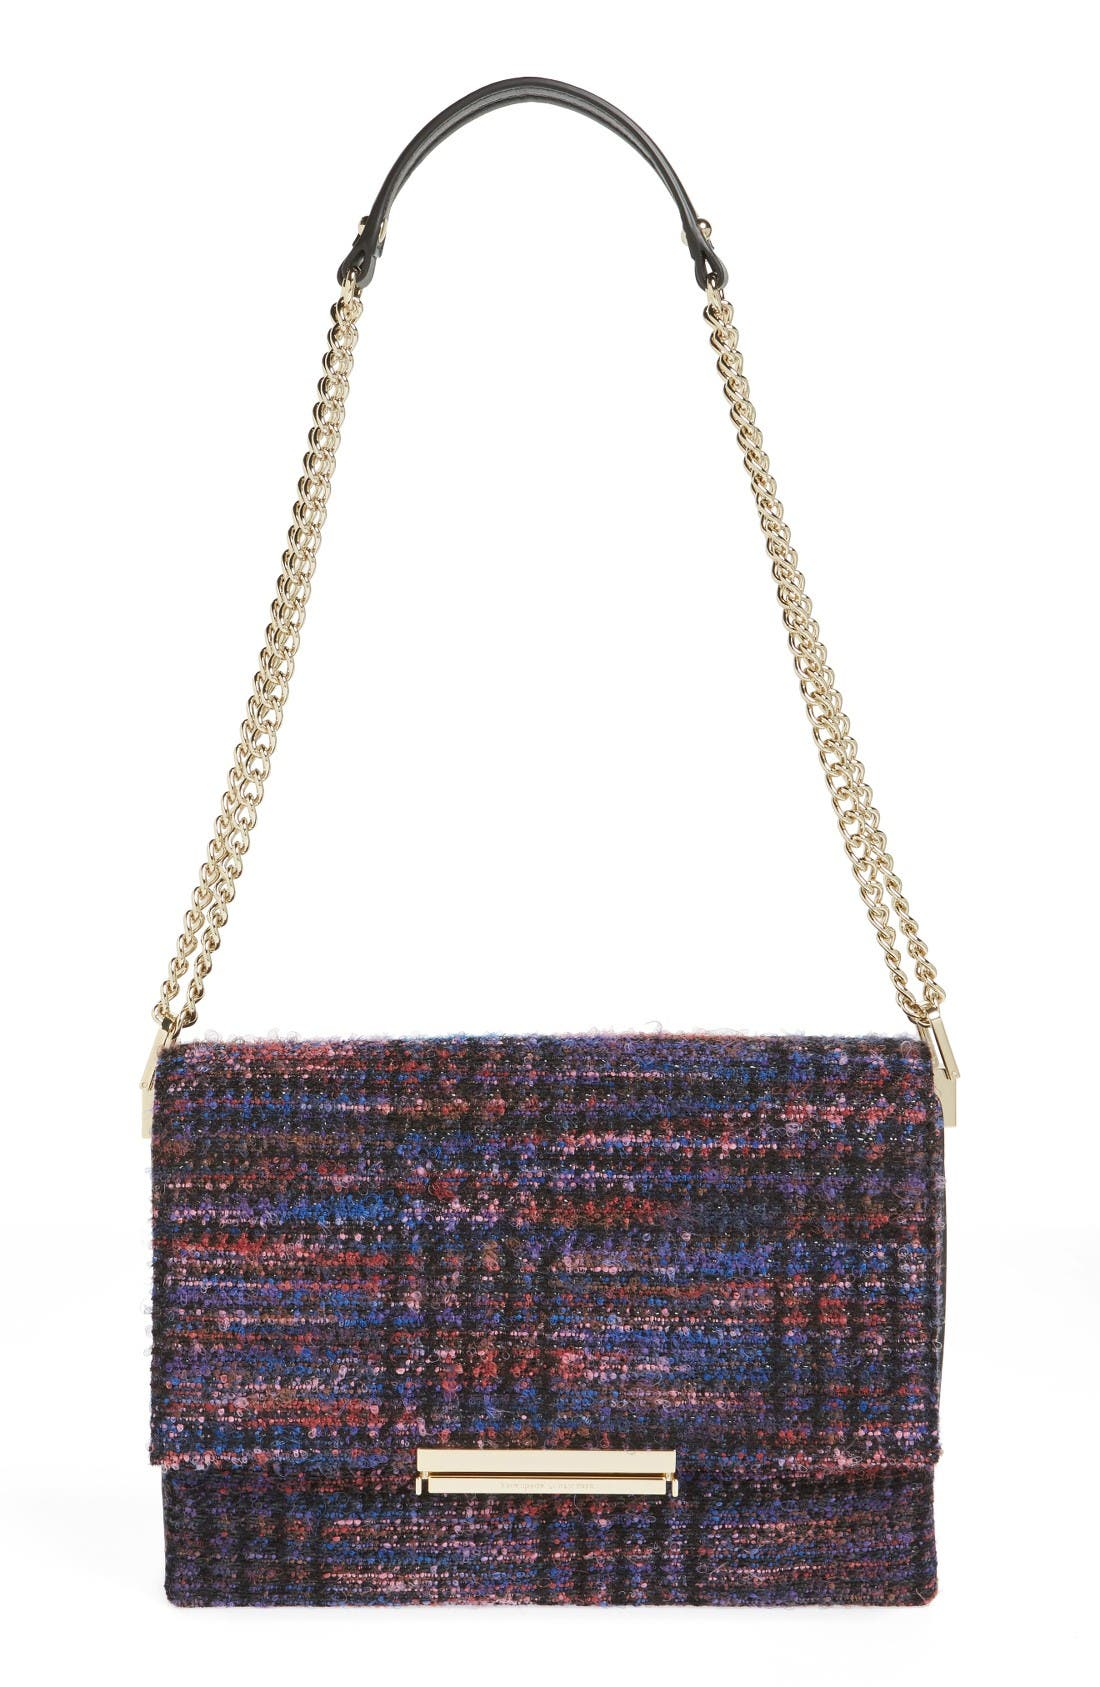 KATE SPADE NEW YORK emerson place lenia tweed